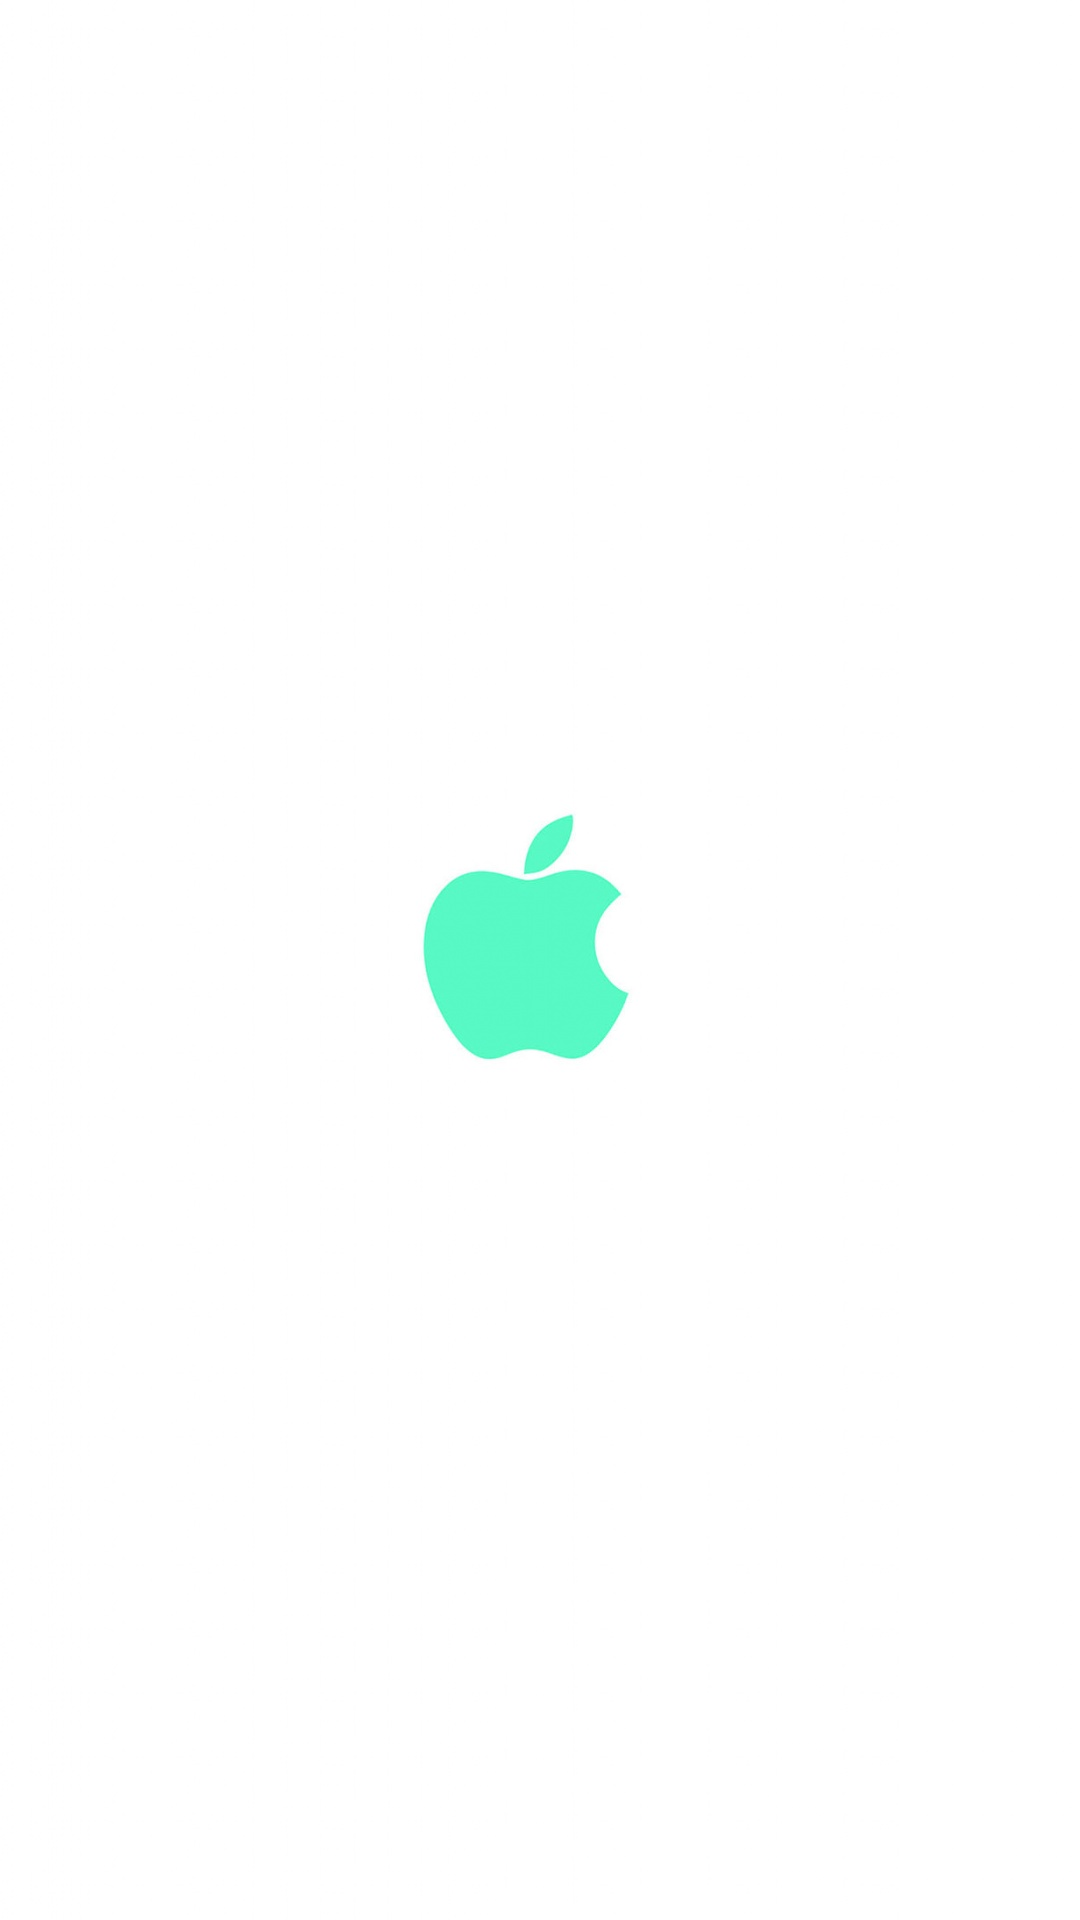 Best-of-Macintosh-Apple-Logo-Tap-image-for-more-mobile-for-iPhone-wallpaper-wp3603296